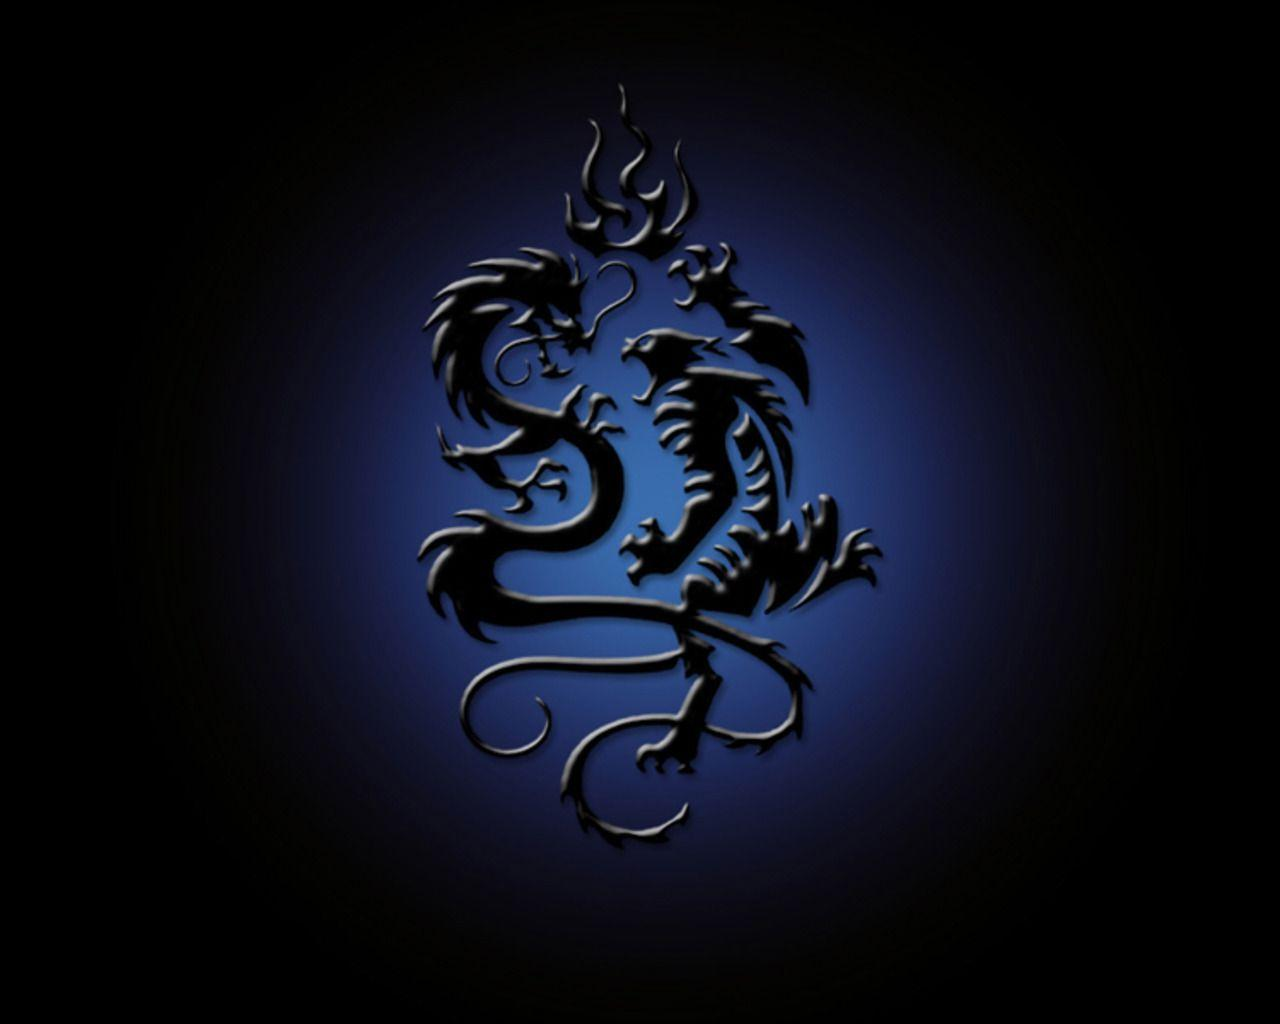 Hd wallpaper dragon - Wallpapers For Blue Dragon Backgrounds